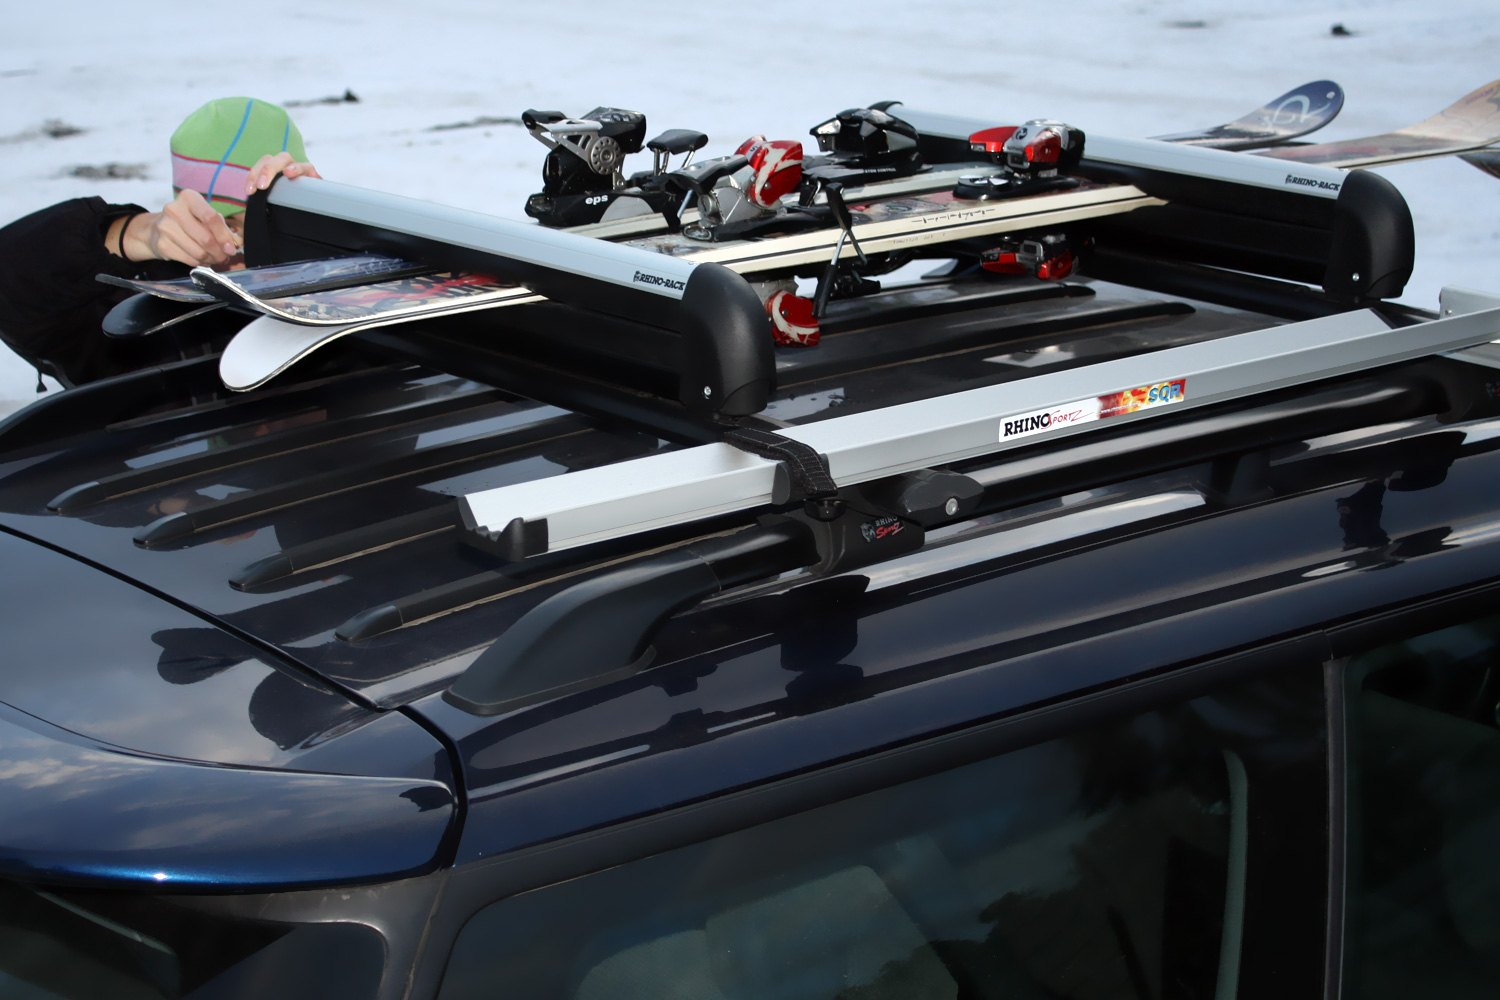 Roof Ski Racks Rooftop Snowboard Carriers Carid Com